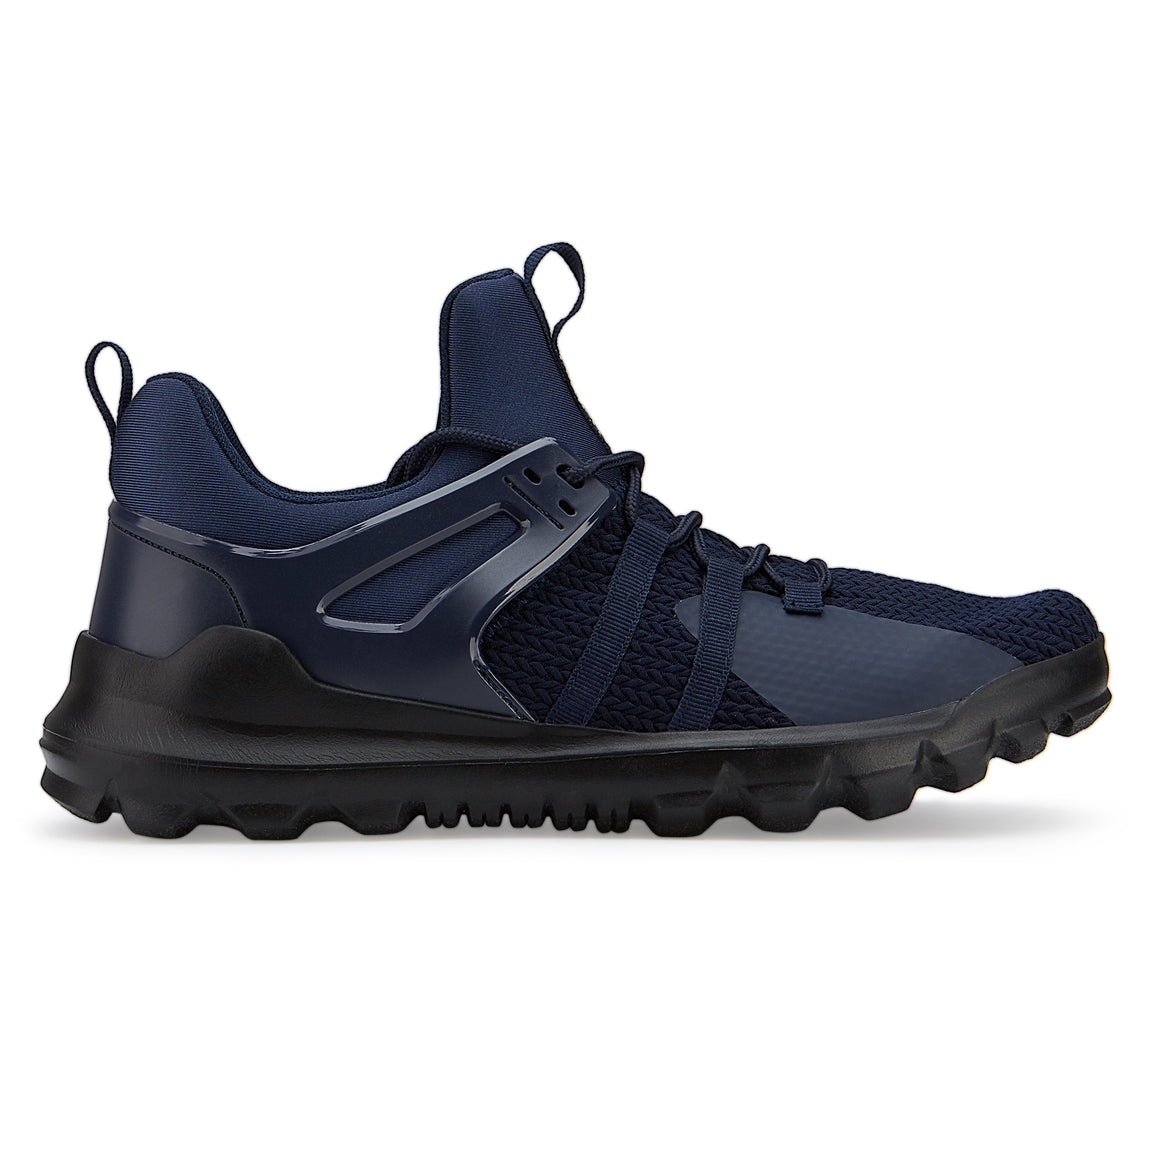 Xray Men's The Ampato Athletic Lowtop Sneakers NAVY